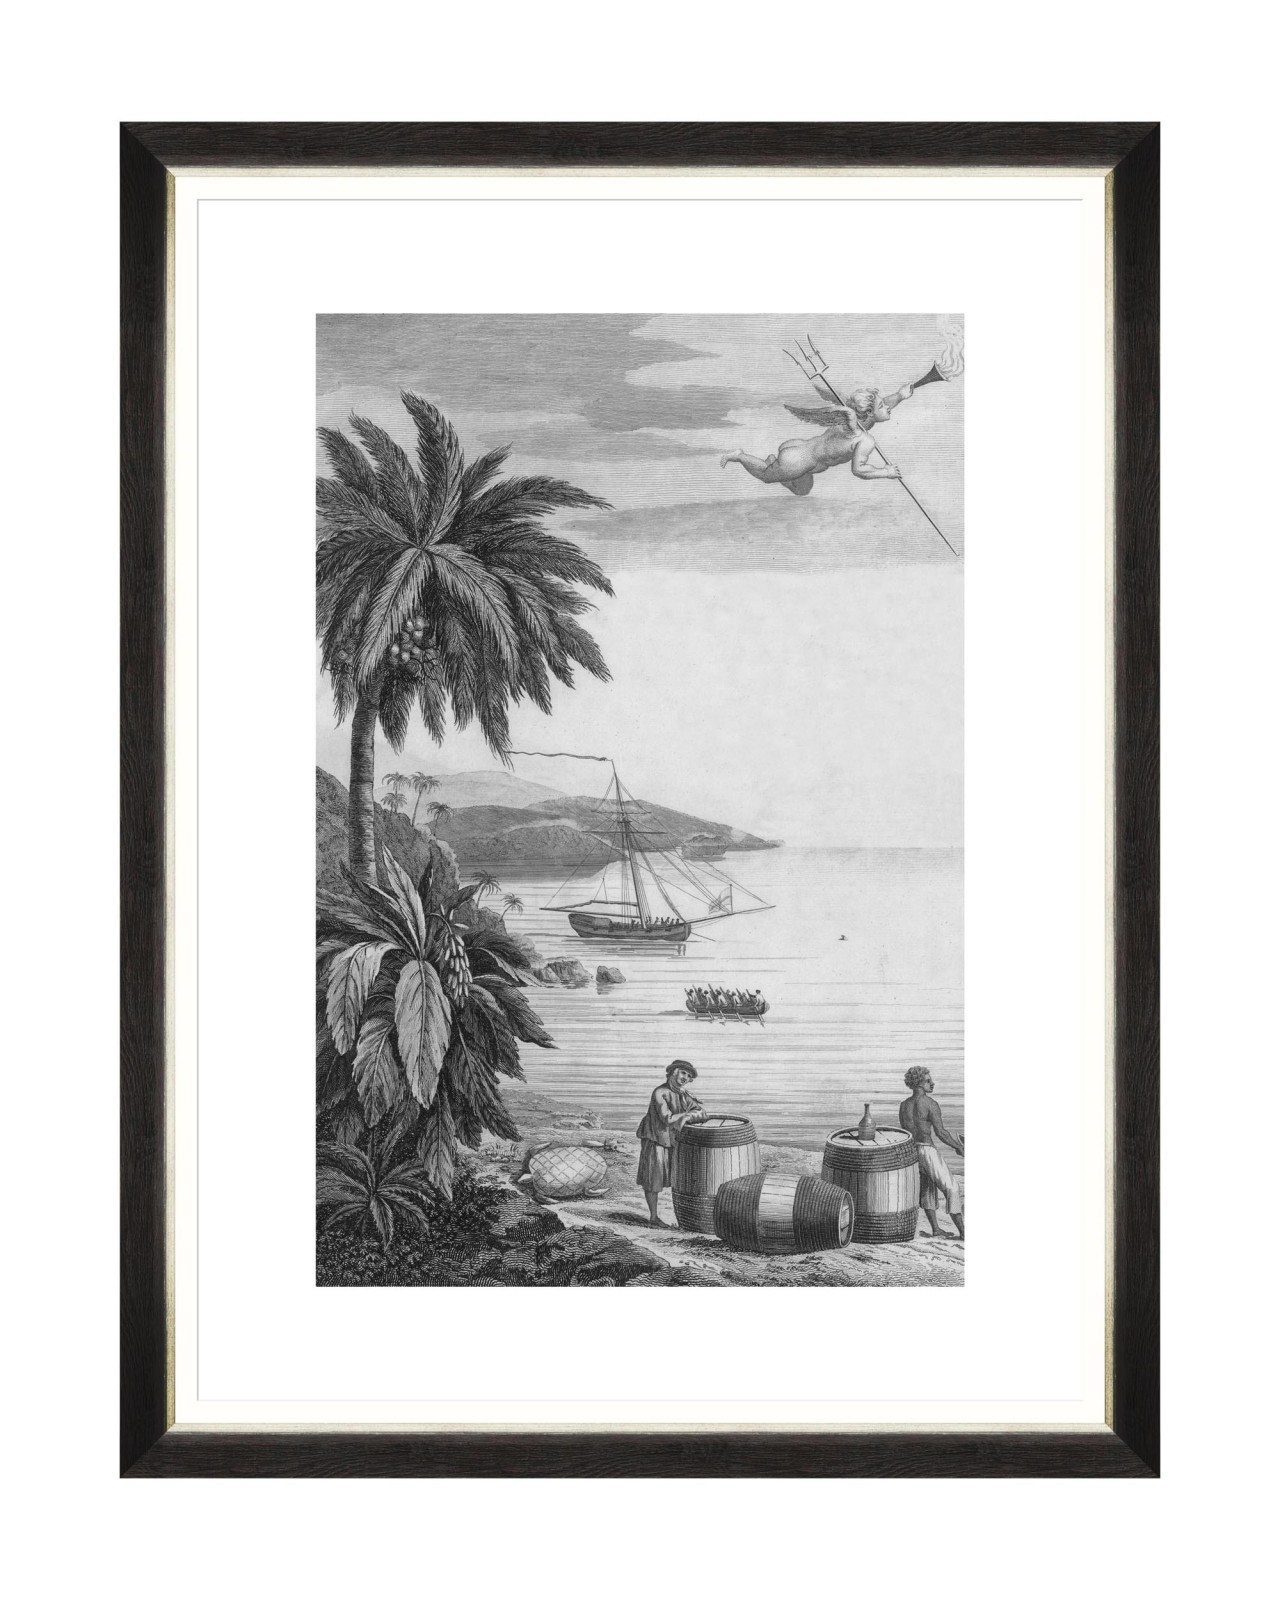 Tablou Framed Art Colonial Port I, 60 x 80 cm